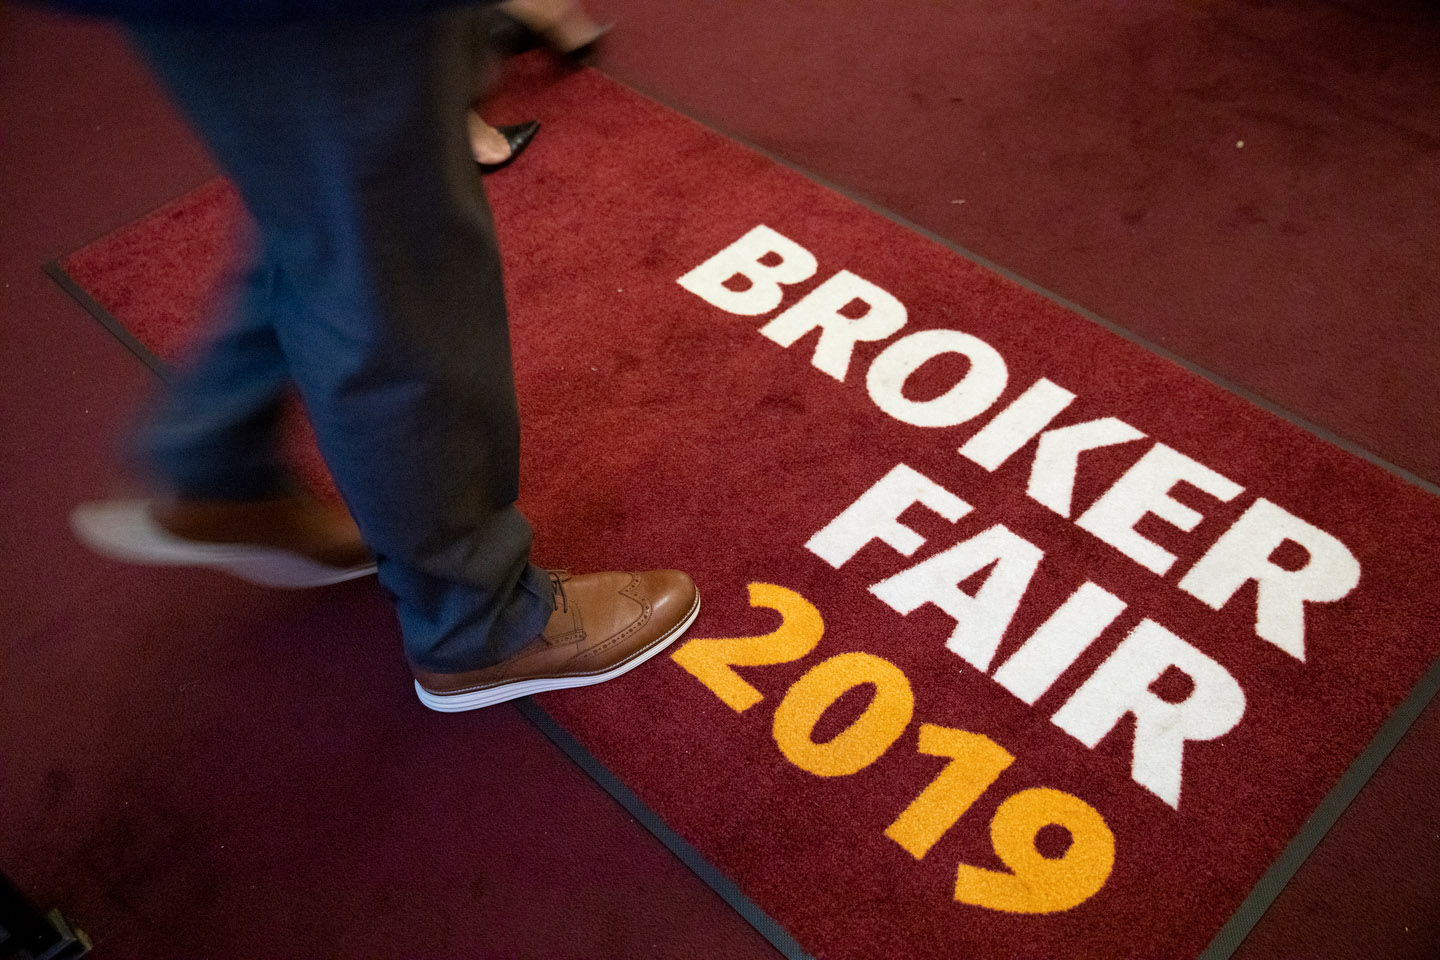 Broker Fair 2019 - Presented by deBanked - 271